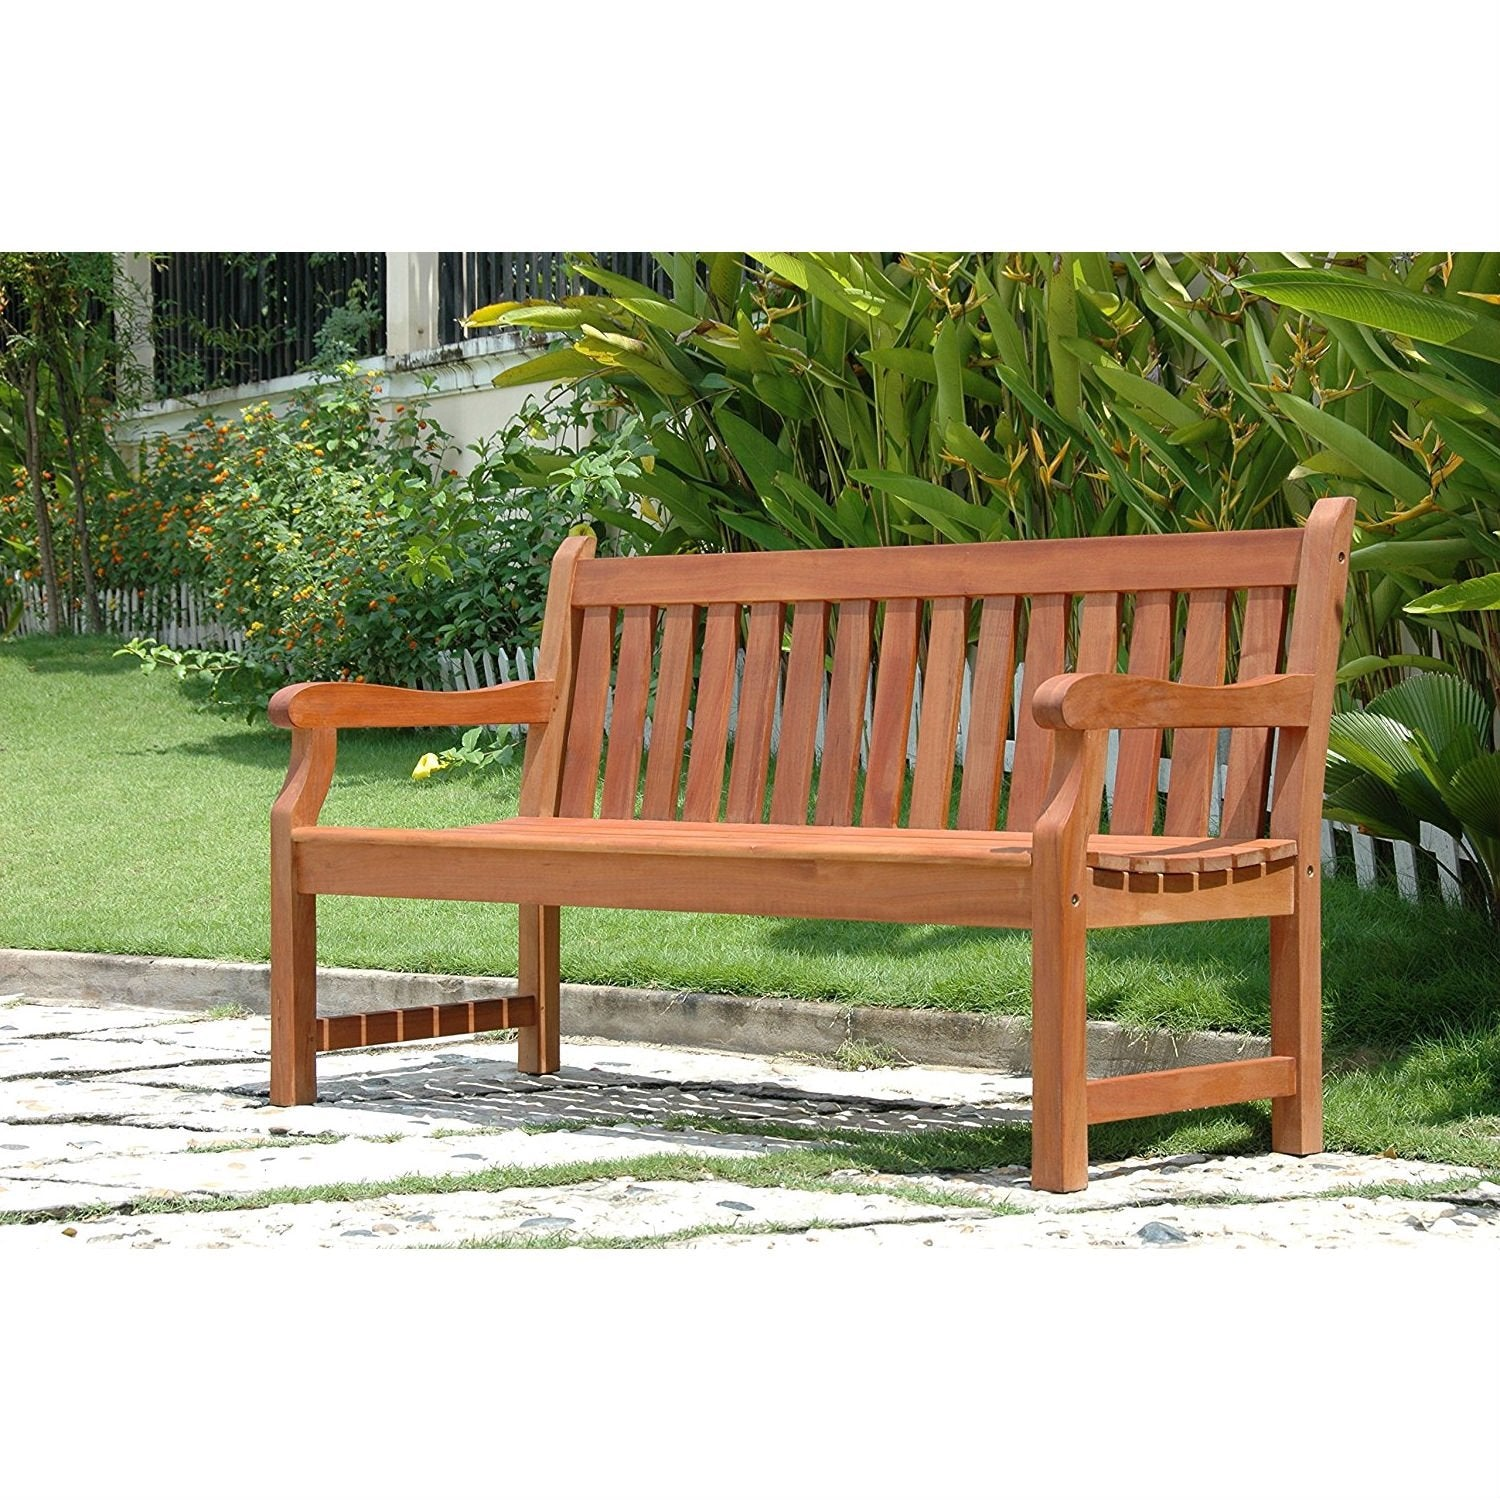 Outdoor Eucalyptus Wood 5-Ft Garden Bench with Natural Finish